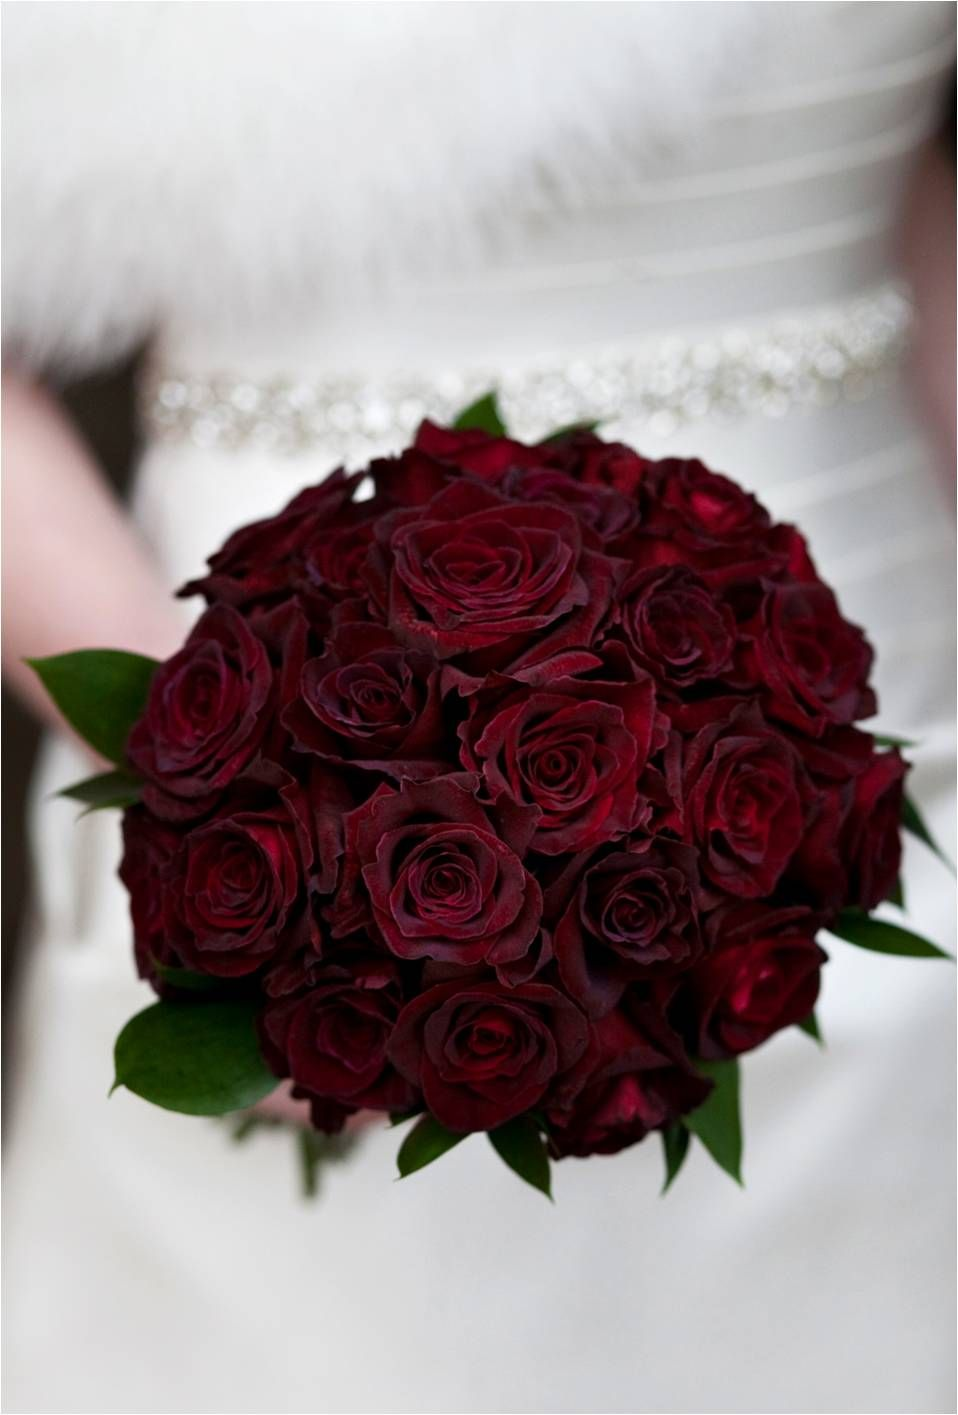 dark red rose wedding bouquet | Bridal Bouquets and Flowers... | Pinterest | Dark red roses ...